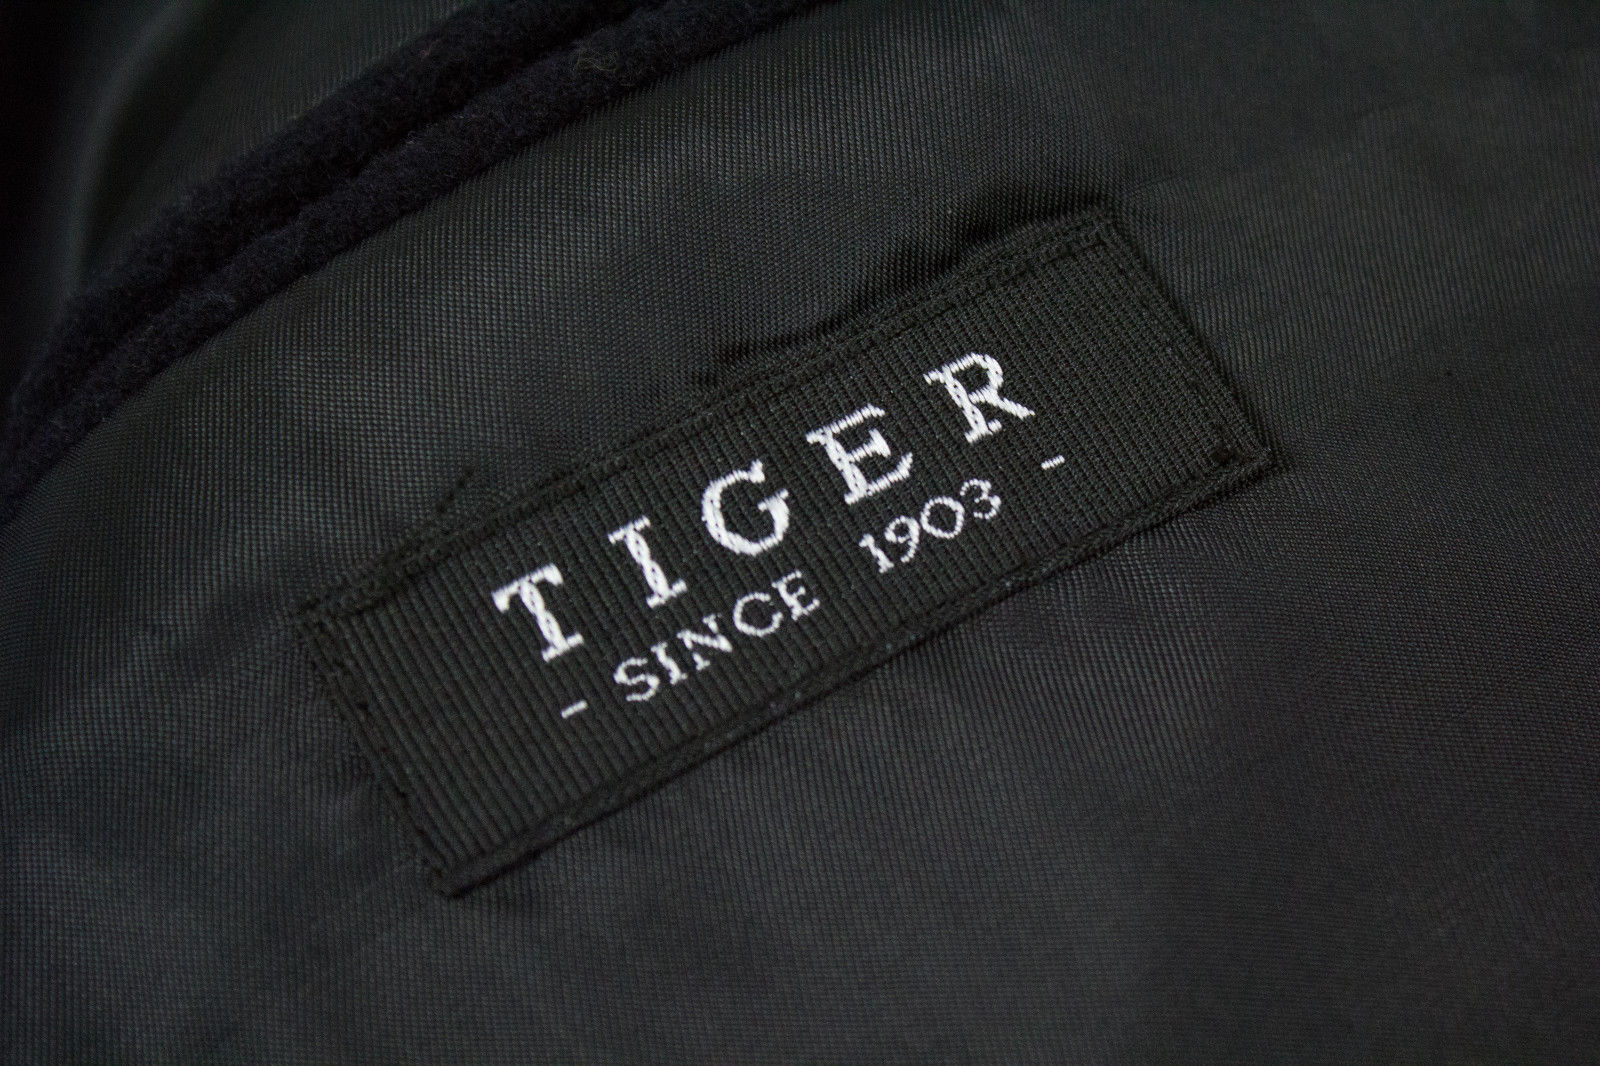 TIGER OF SWEDEN Cashmere-Wool Double Breasted Navy Coat, US 42 - secondfirst